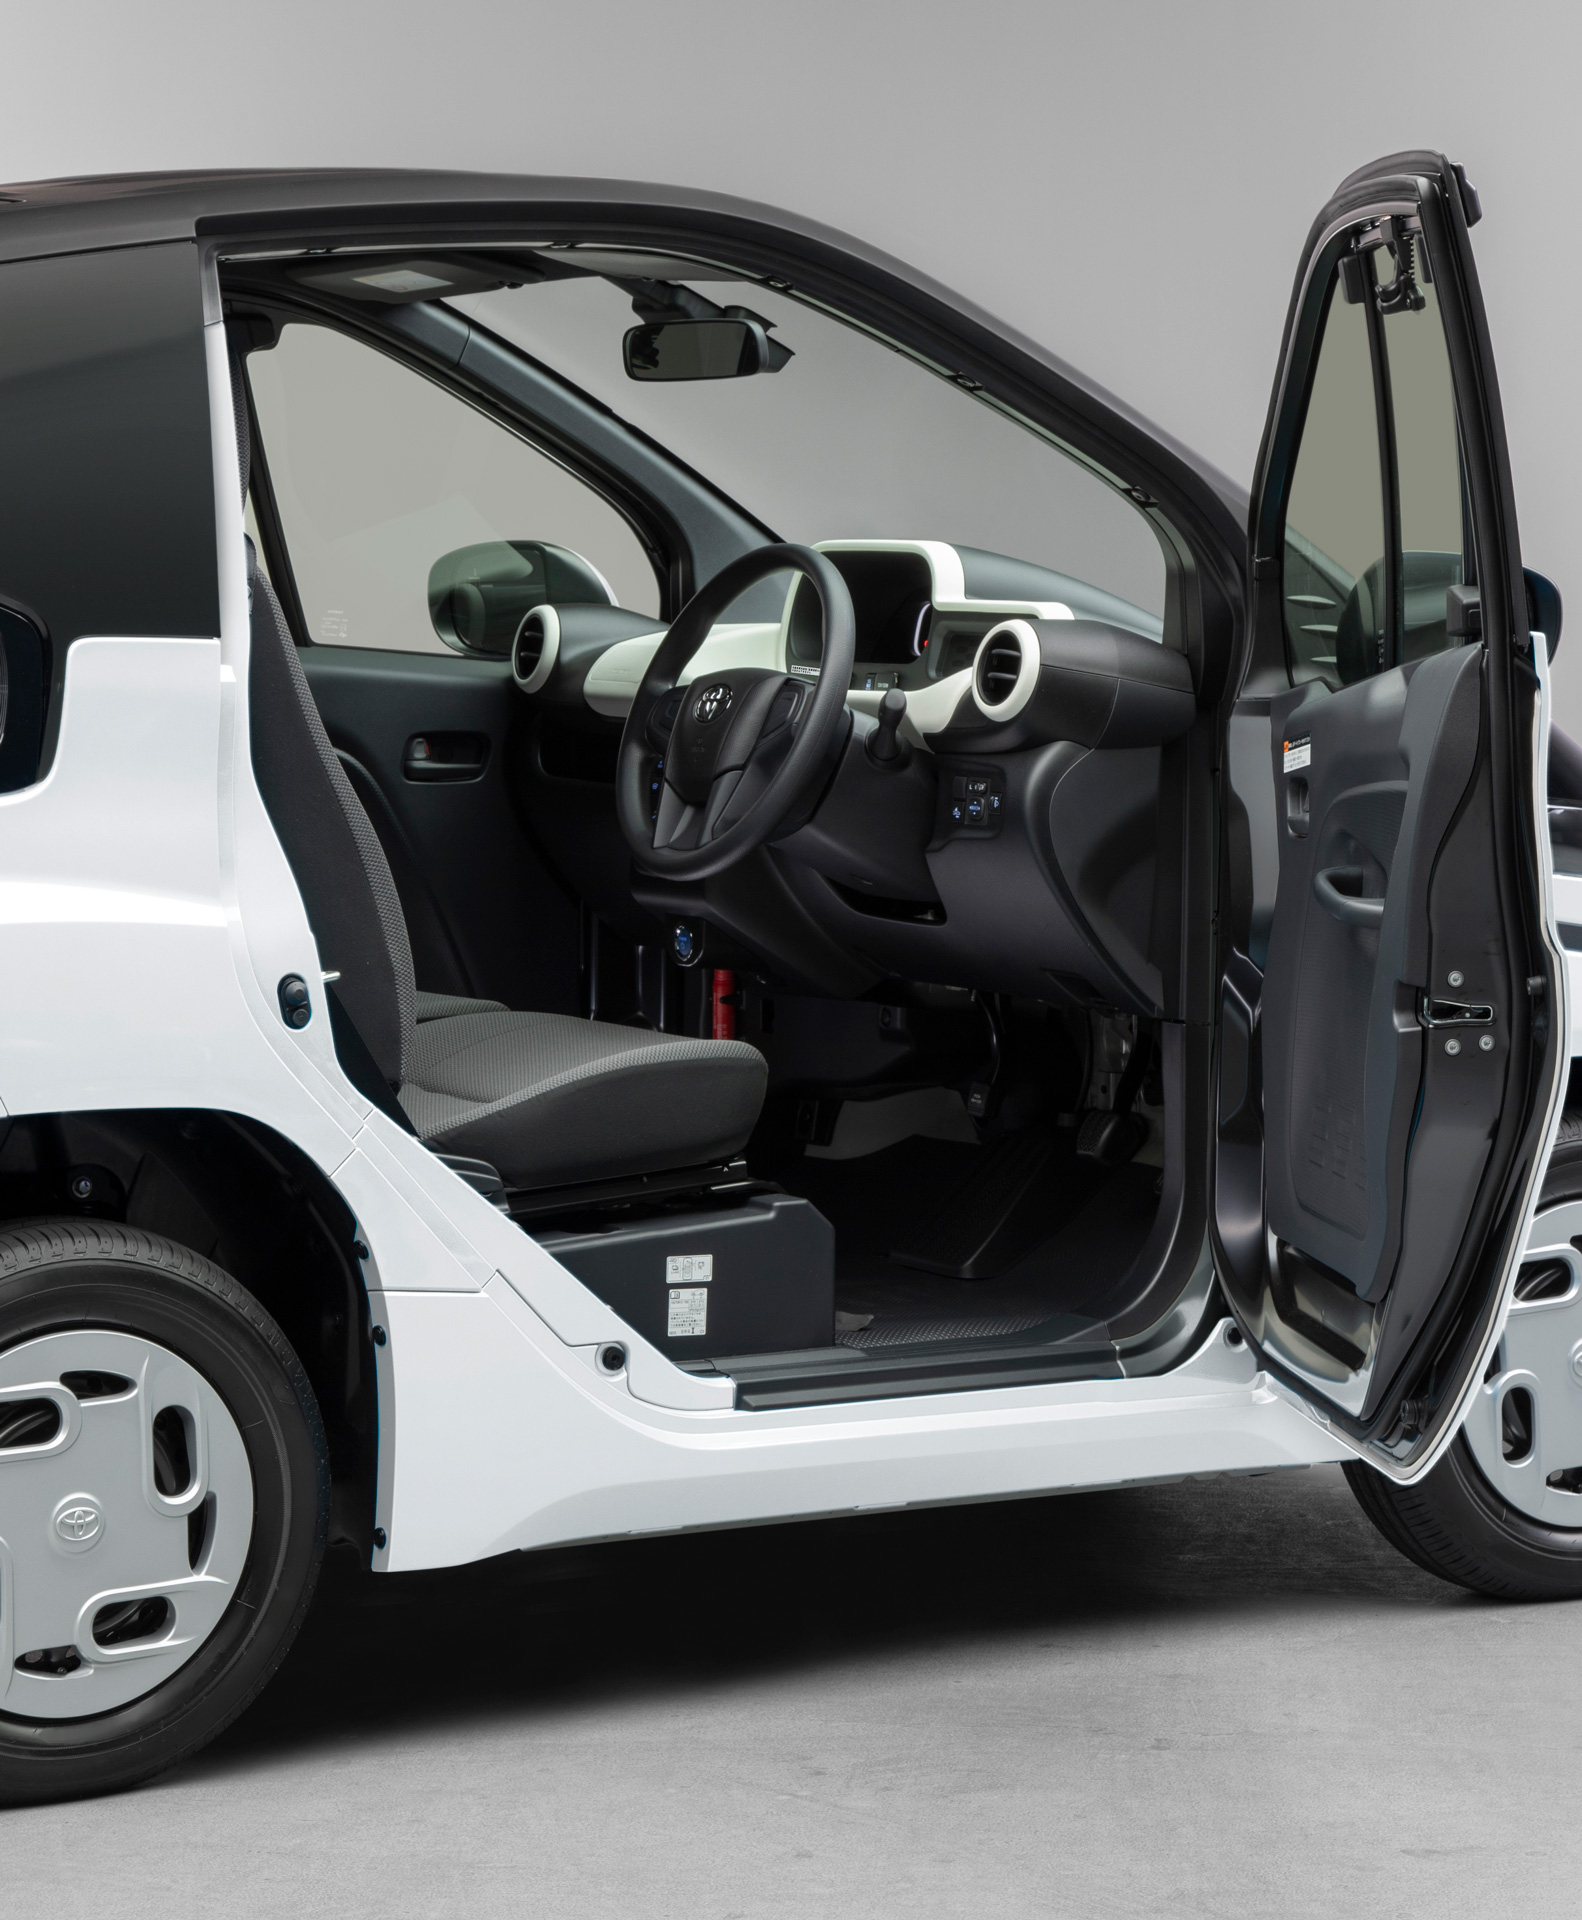 """Toyota Launches """"C+pod"""" Ultra-Compact Battery Electric Vehicle in JapanAn environmentally-friendly two-seater BEV that expands the freedom of movement - Image 2"""